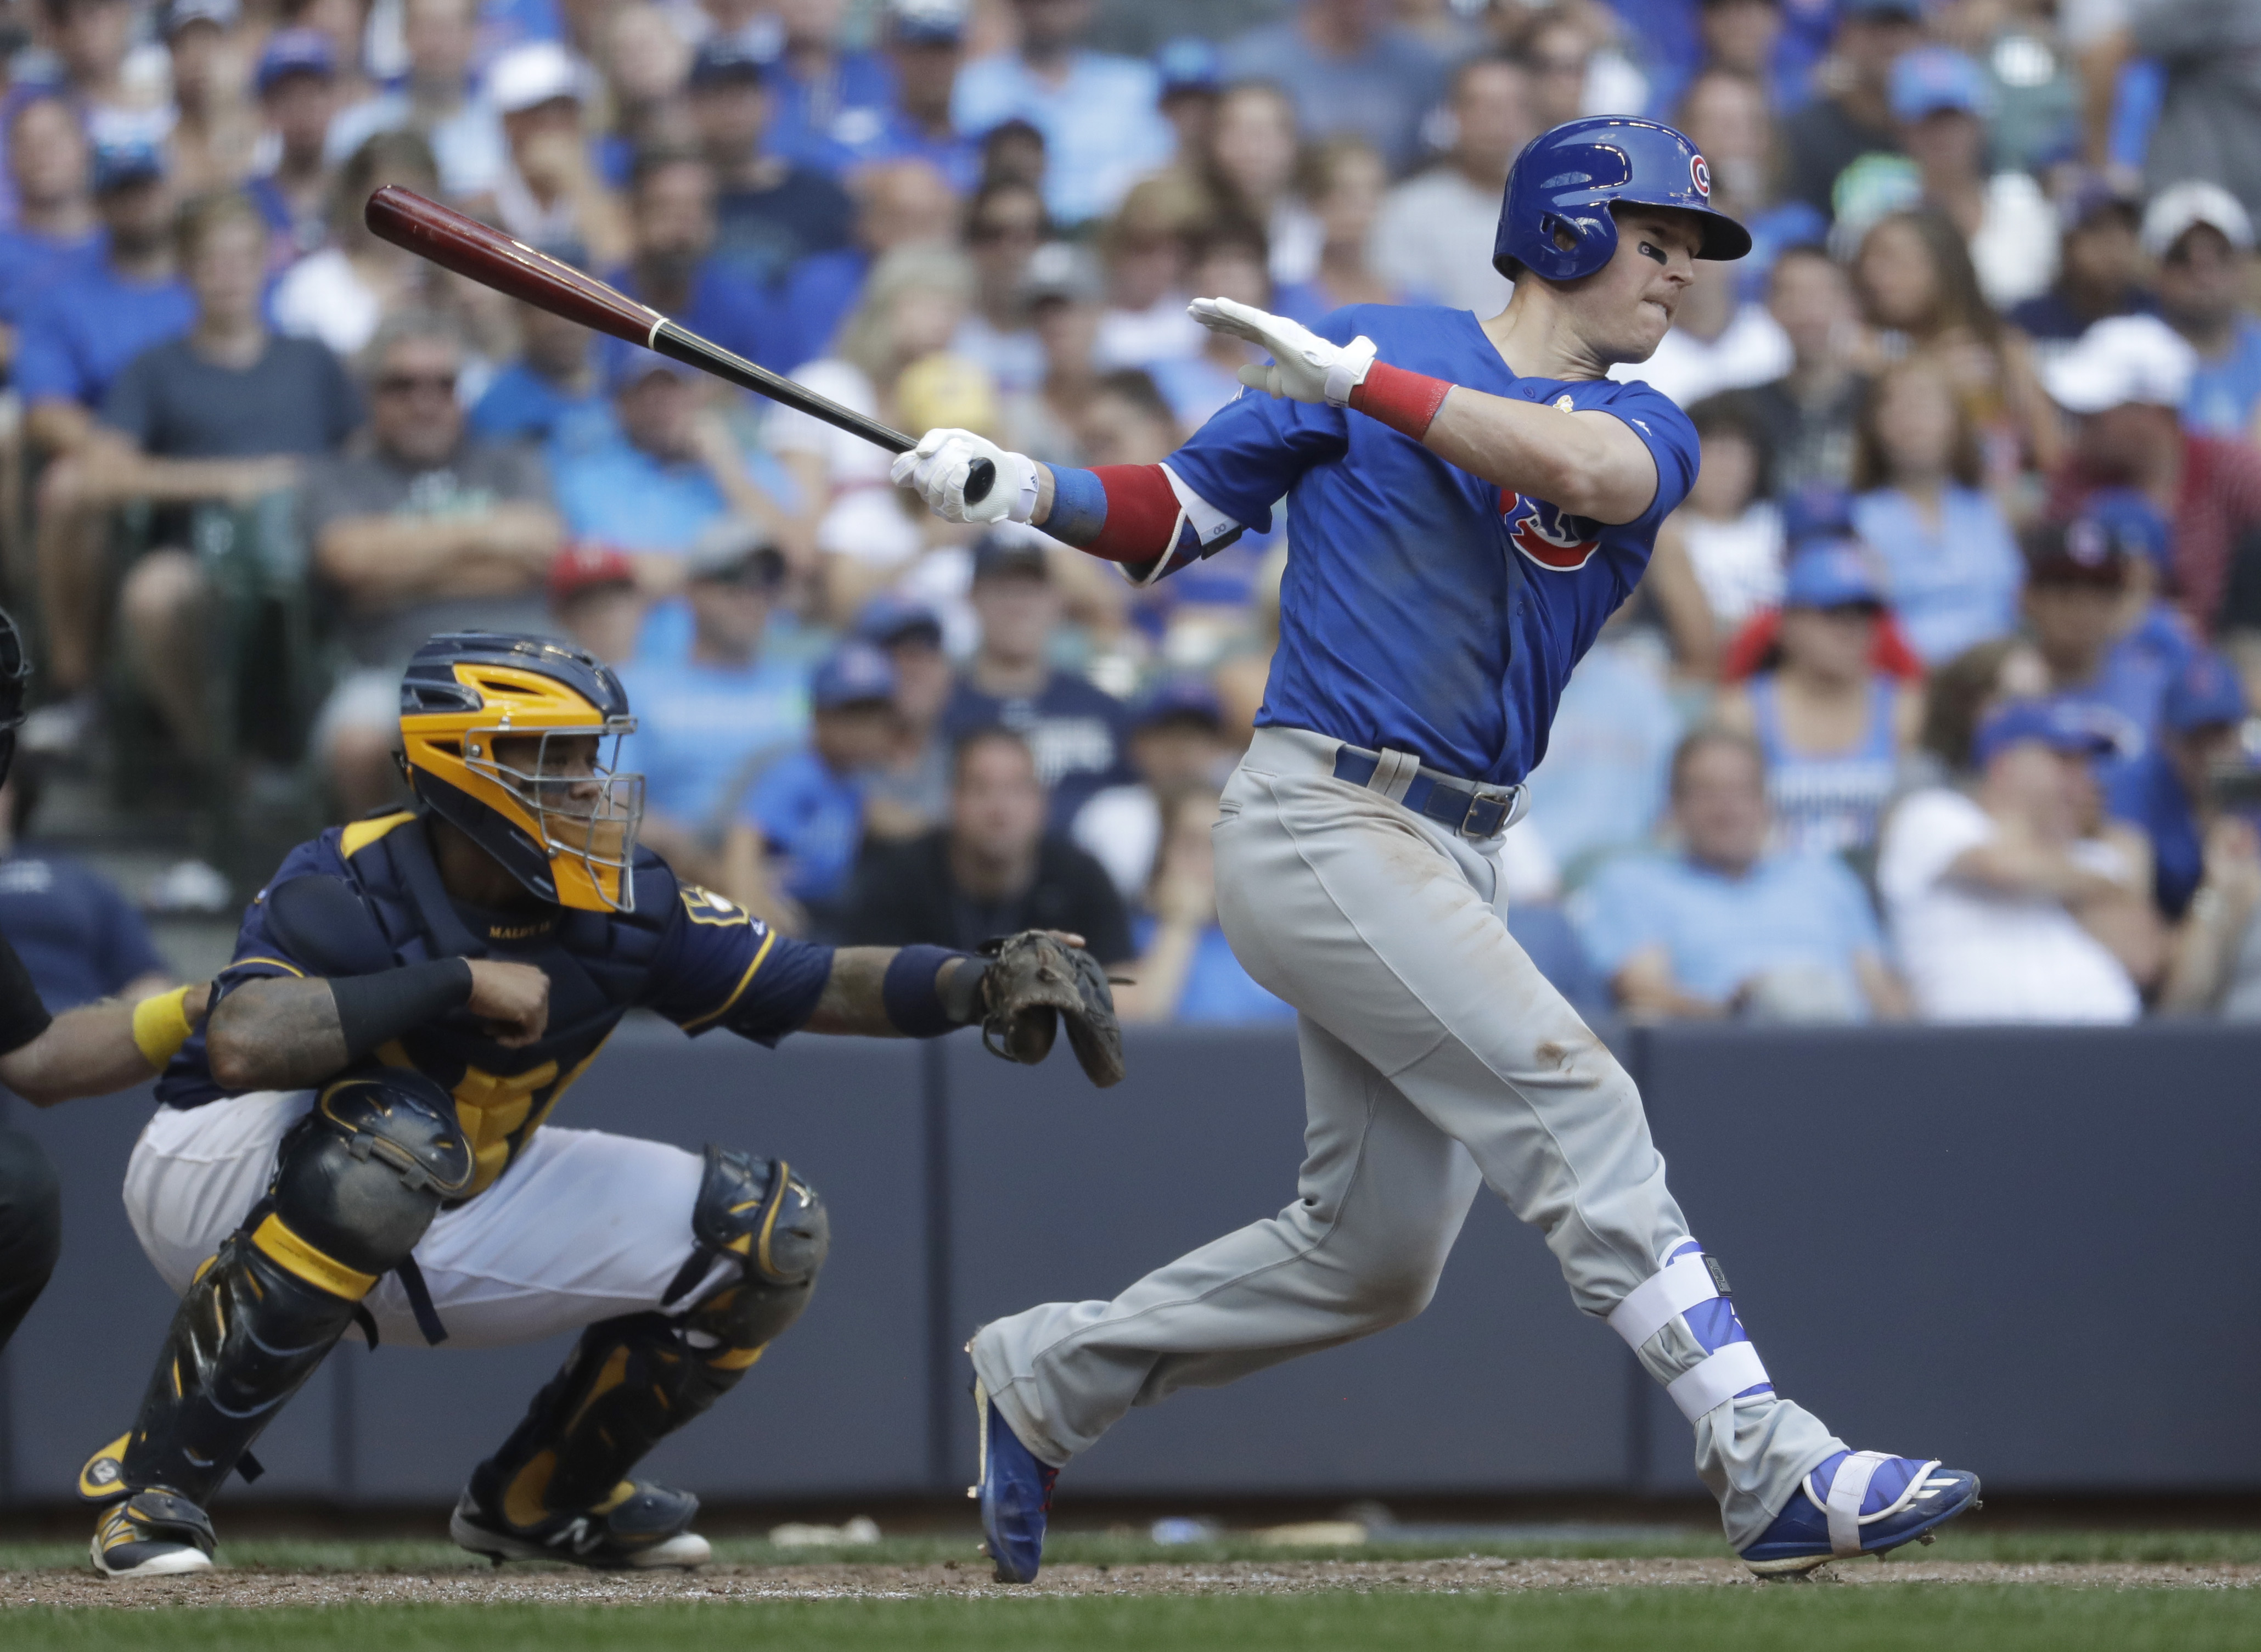 Chicago Cubs' Chris Coghlan hits a two-run scoring single during the eighth inning of a baseball game against the Milwaukee Brewers Monday, Sept. 5, 2016, in Milwaukee. (AP Photo/Morry Gash)